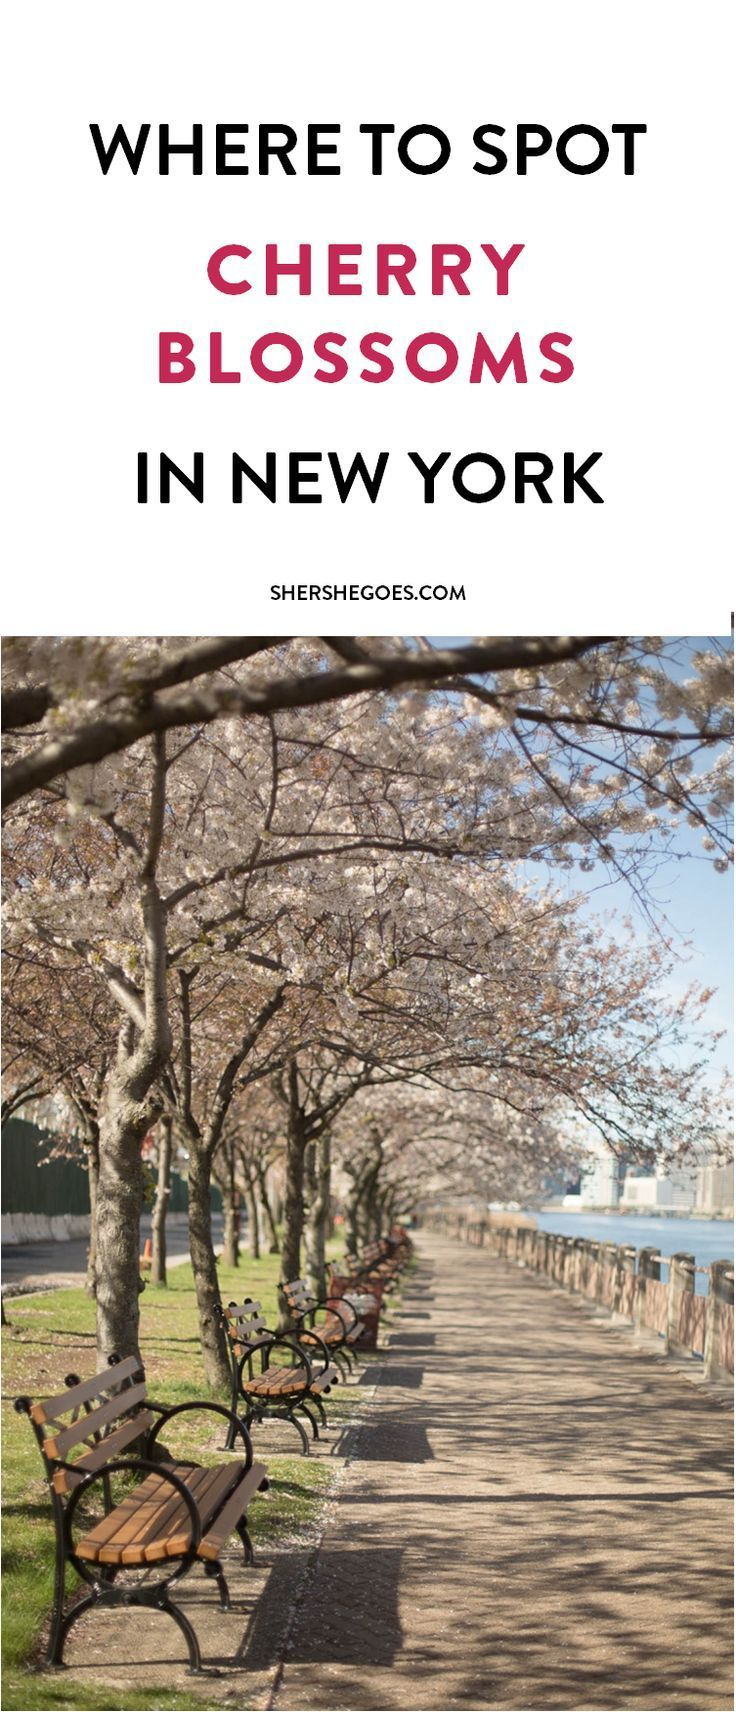 where to find cherry blossoms in new york, cherry blossom season in nyc, where to see cherry blossoms in nyc, Cherry Blossoms on New York's Roosevelt Island, cherry blossom season, best cherry blossom views